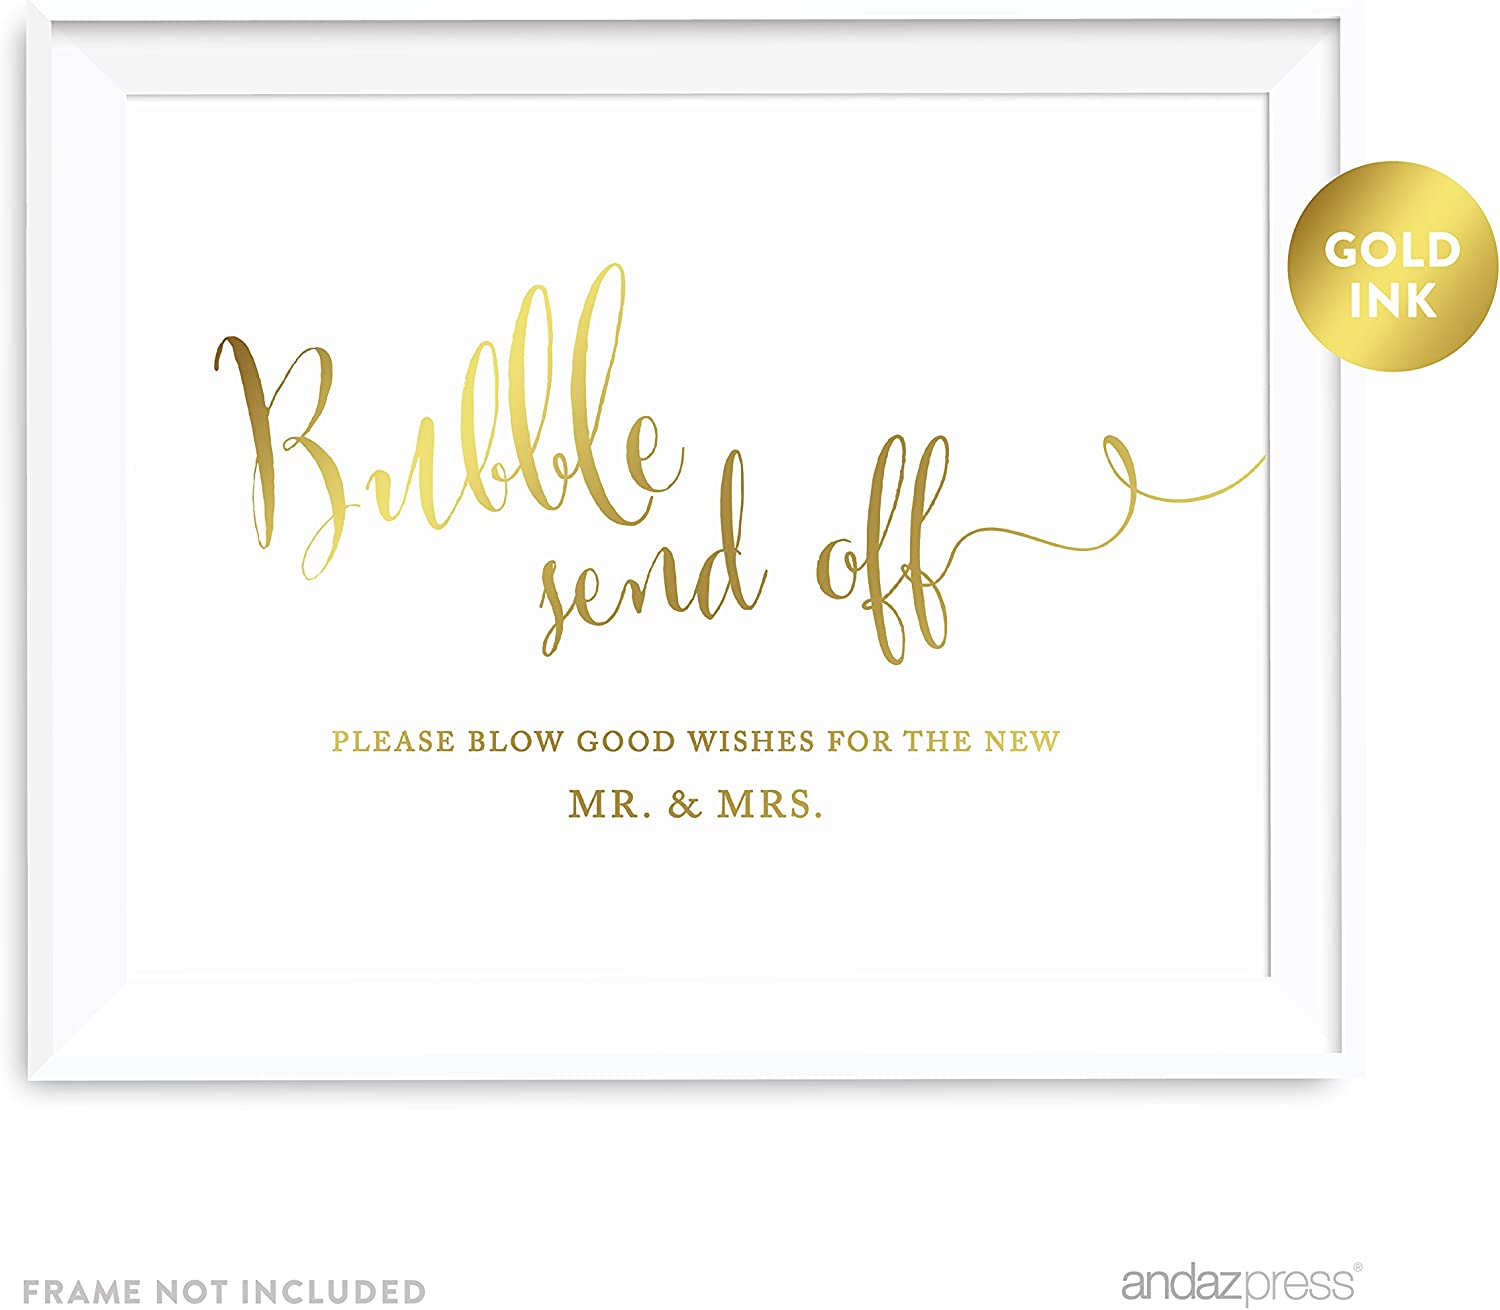 Amazon Com Andaz Press Wedding Party Signs Metallic Gold Ink Print 8 5x11 Inch Bubble Send Off Please Blow Good Wishes For The New Mr Mrs Sign 1 Pack Unframed Kitchen Dining